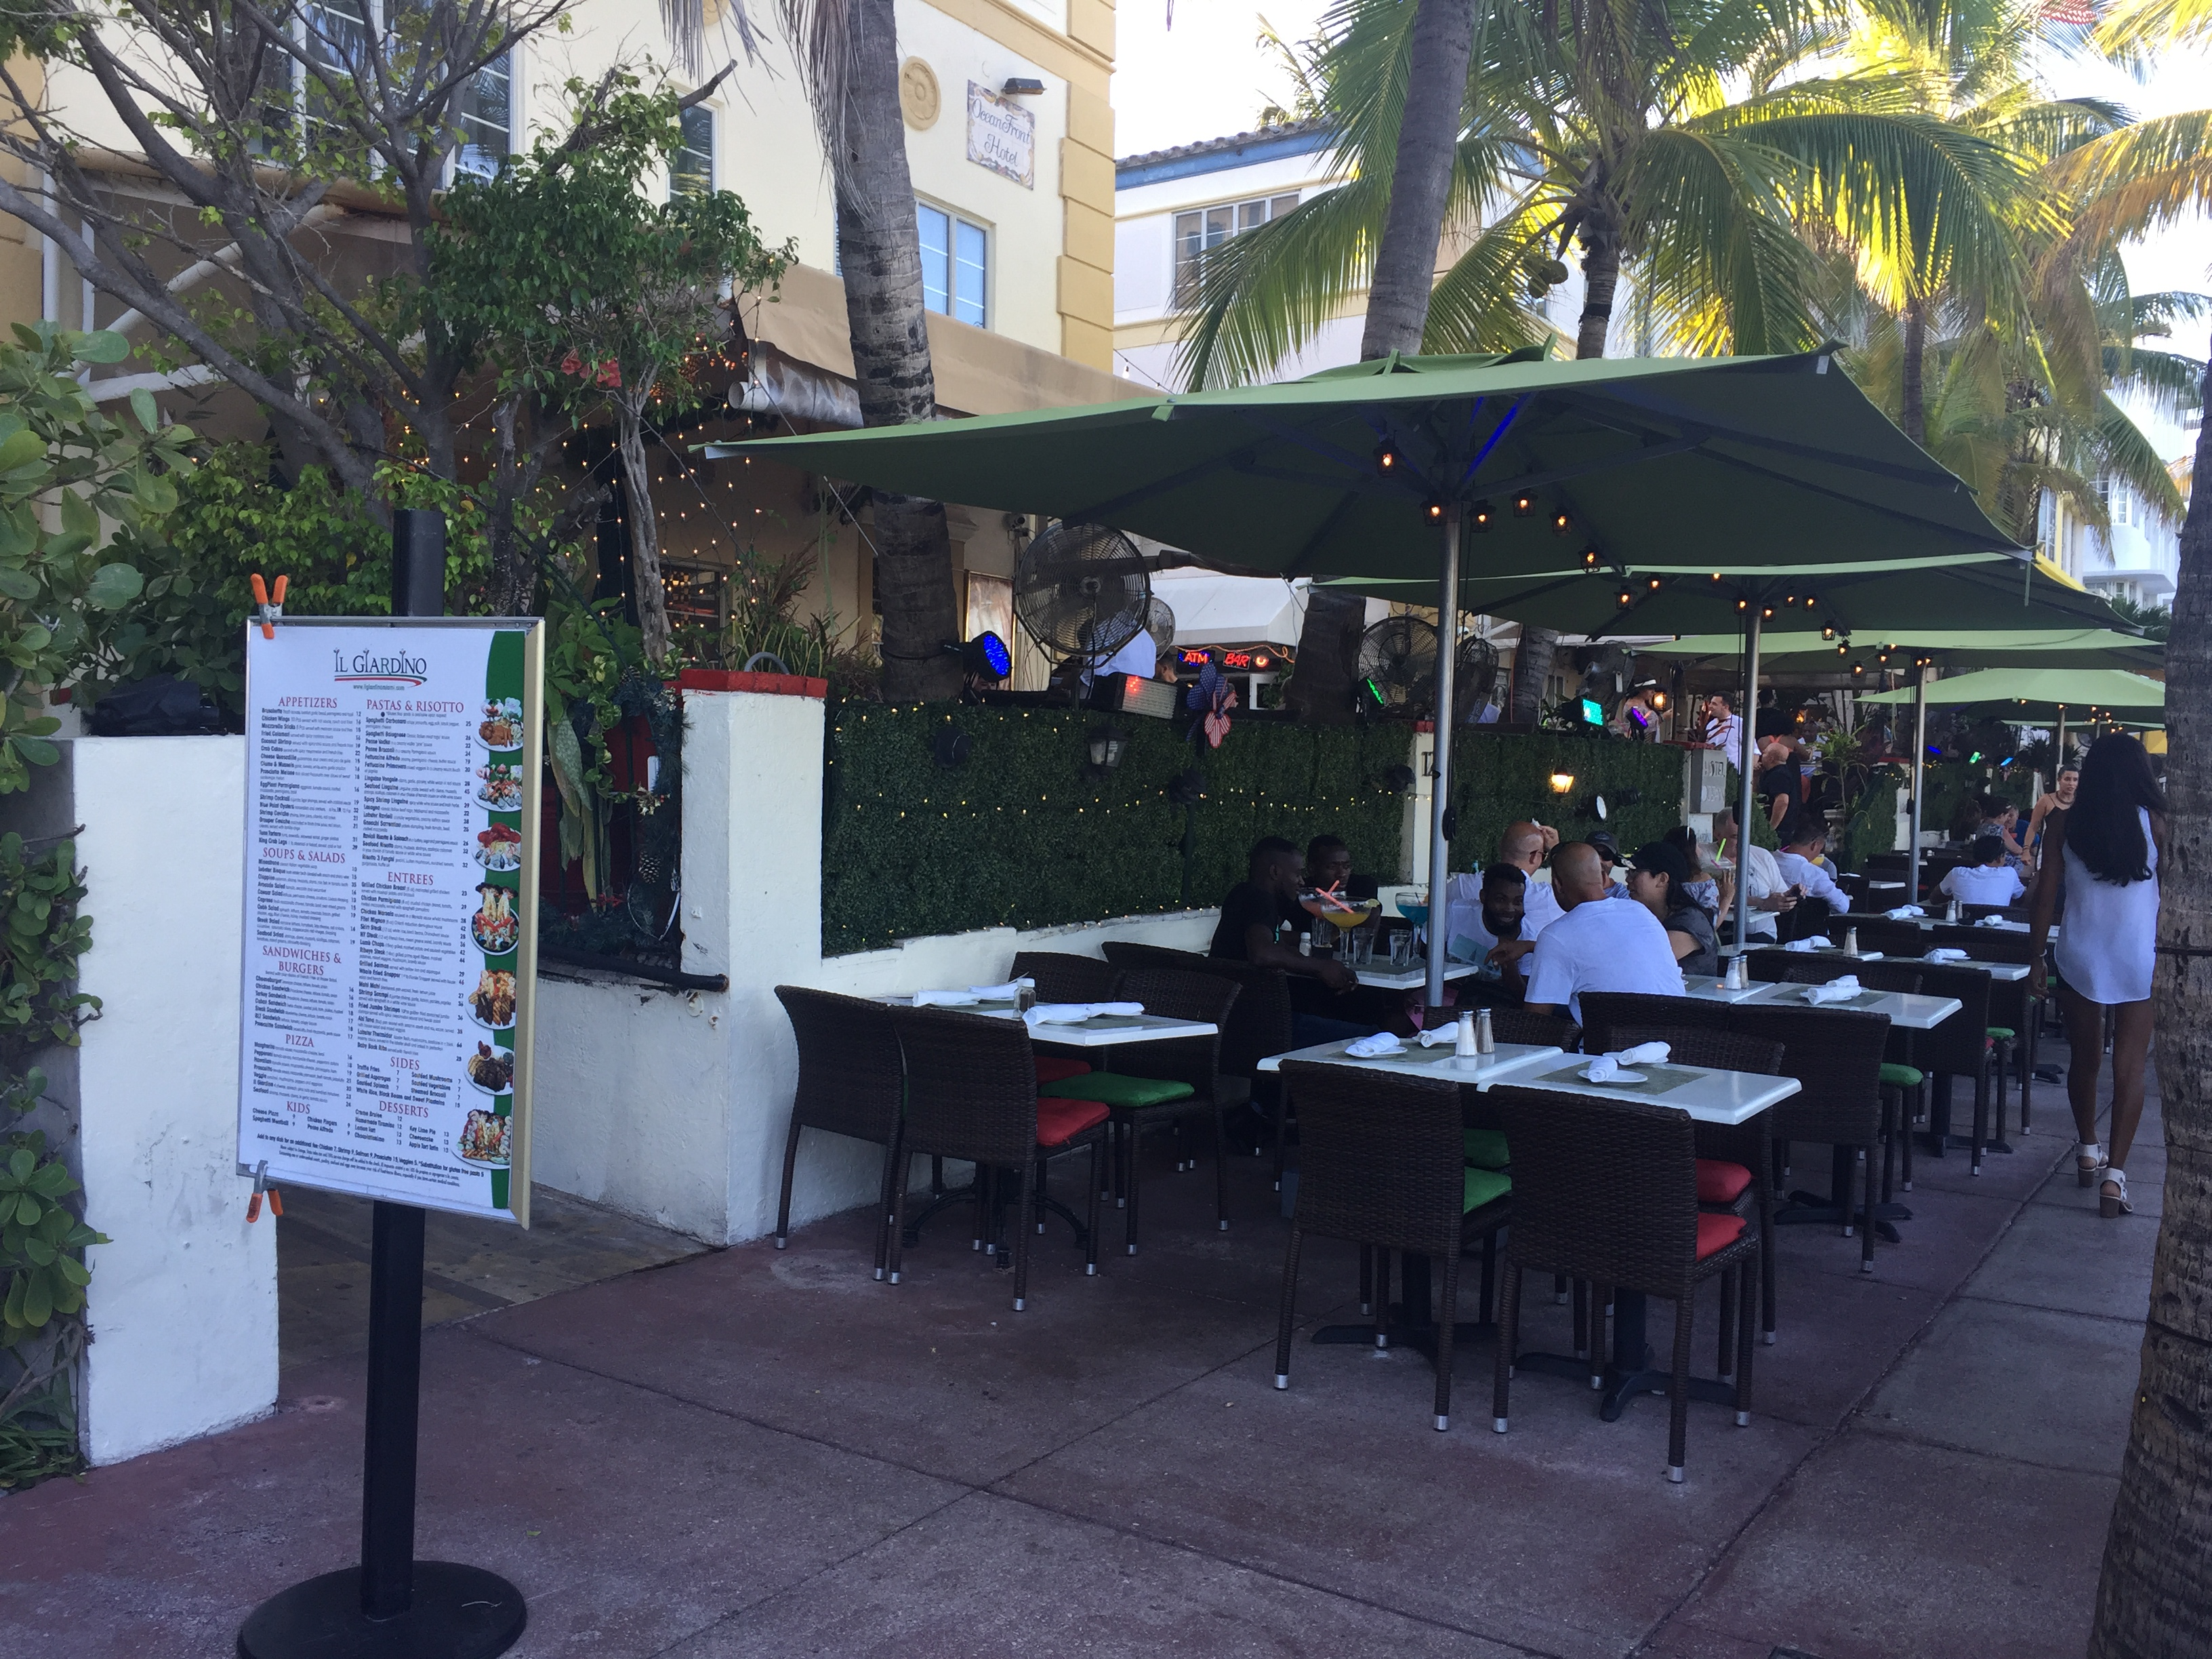 Giardino Prices Il Giardino S Outdoor Music Permit Remains Suspended South Beach